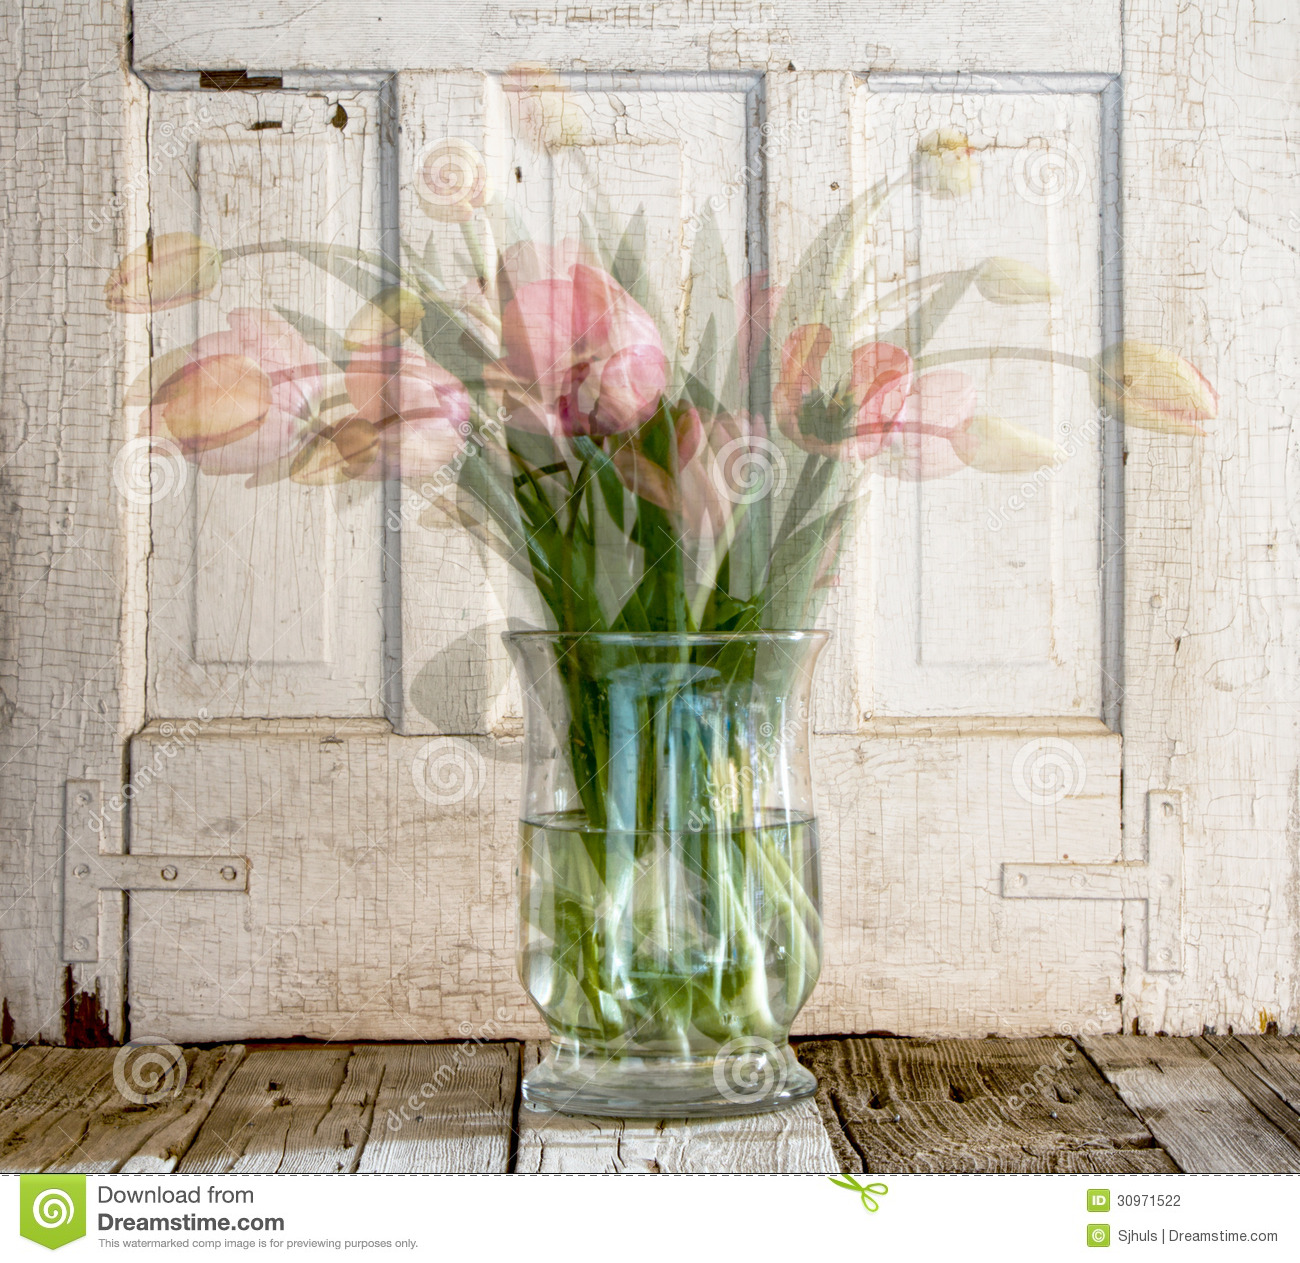 Tulips in vase stock photo image of greeting beauty 30971522 tulips in vase reviewsmspy